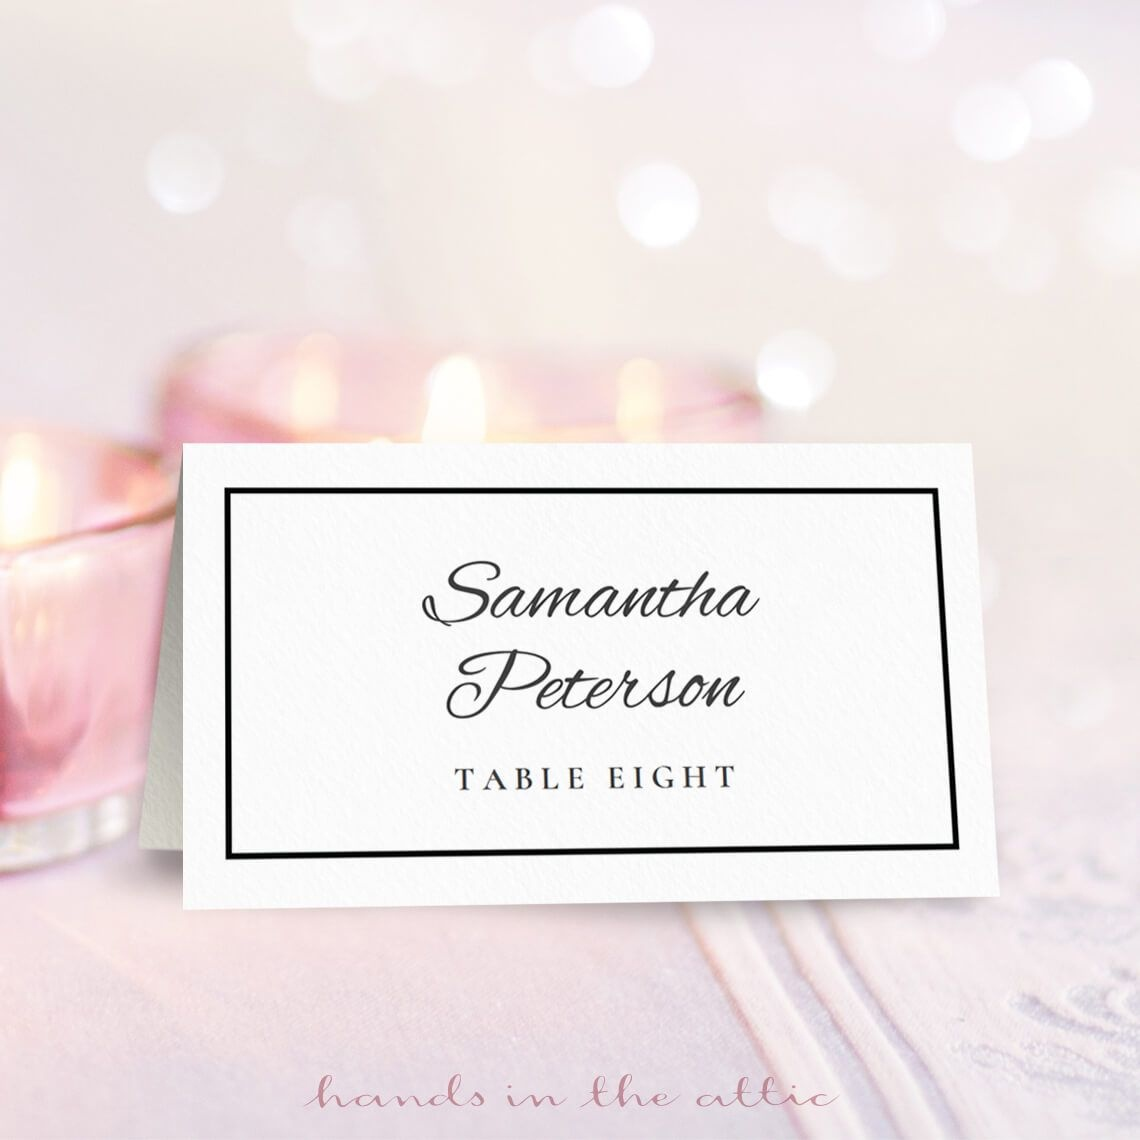 005 Free Printable Place Cards Template Shocking Ideas Table Card - Free Printable Place Cards